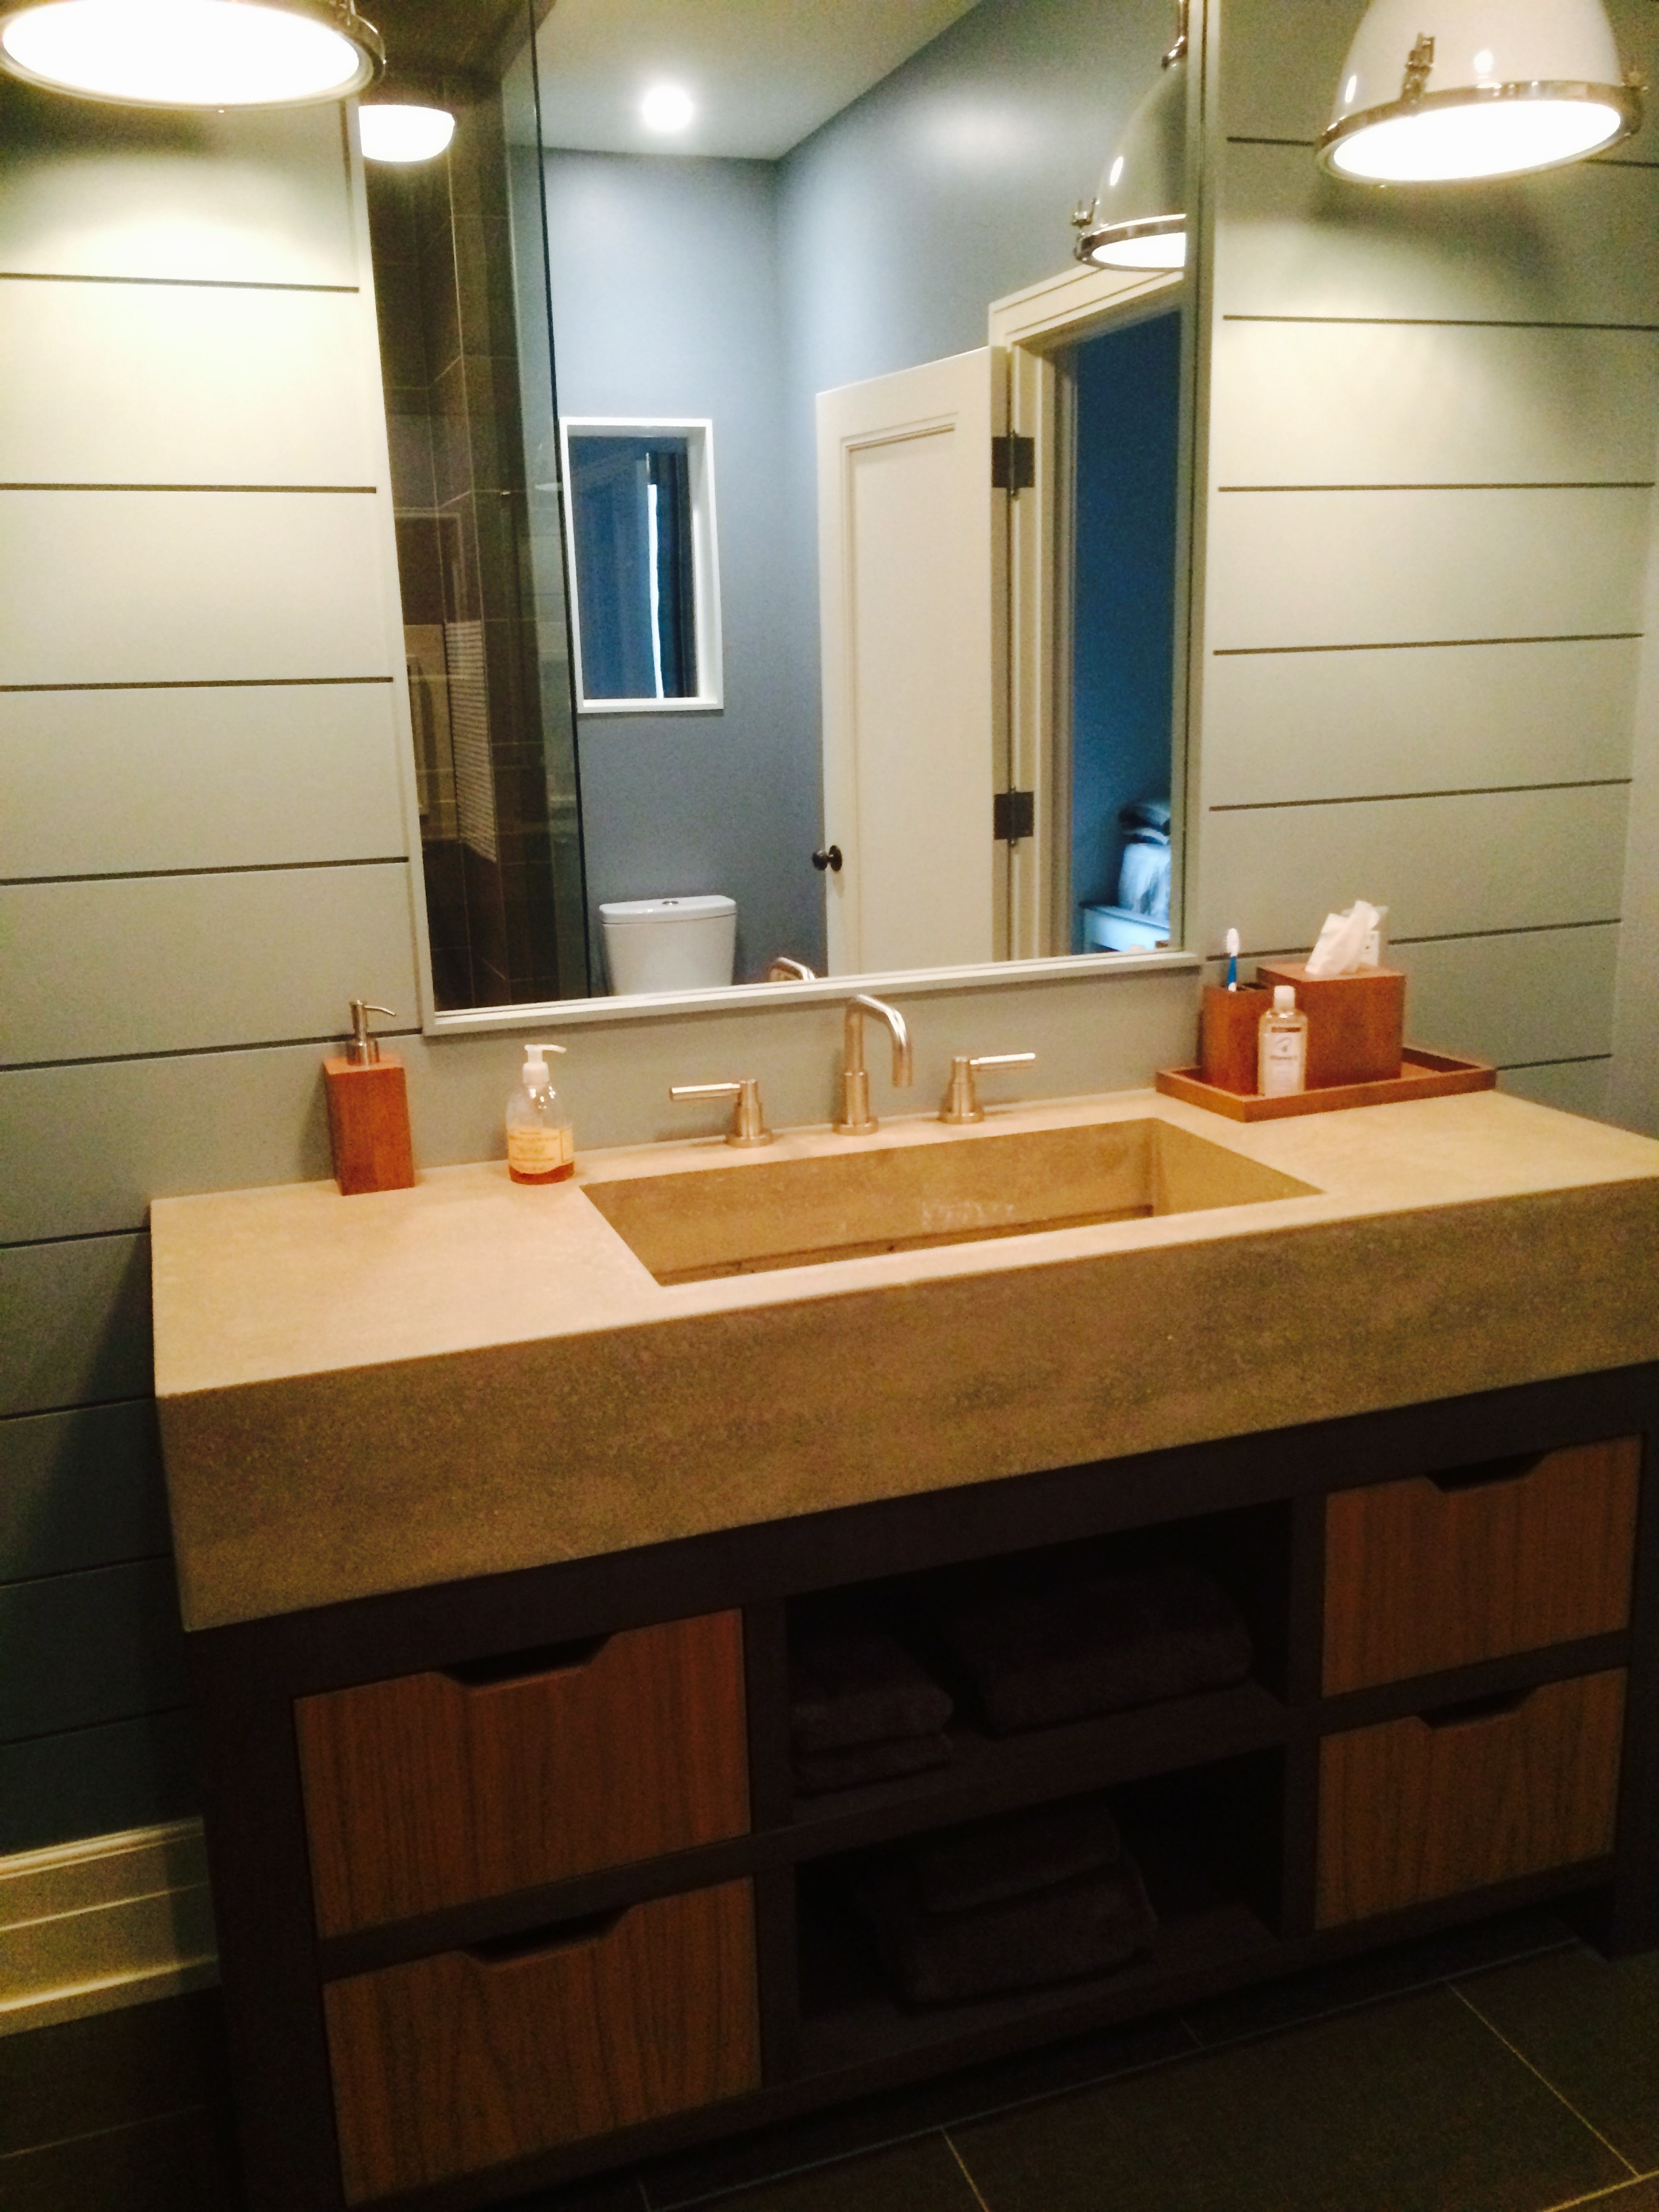 nji options sinksi sink dsc features concrete best countertops sinks bathroom the